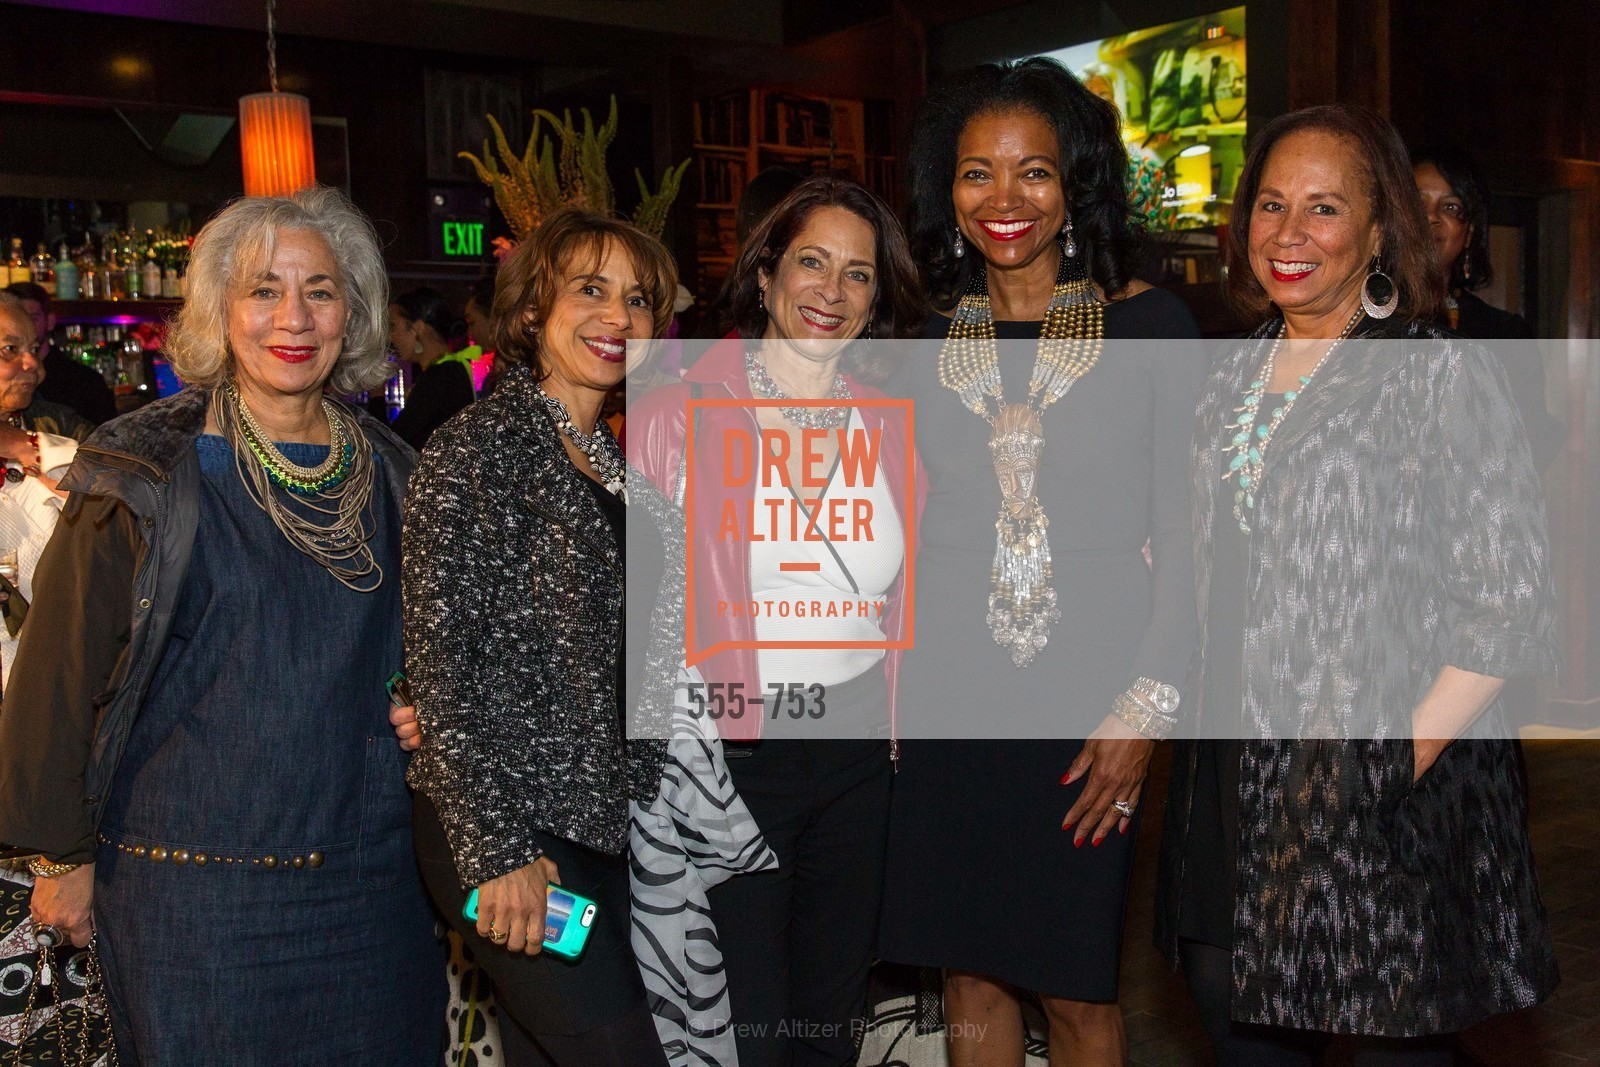 Peggy Forbes, Carla Foster, Sylvia Mestayer-Collins, Denise Bradley Tyson, Schyleen Qualls, INSPIRED LUXE Launch Party Hosted by Denise Bradley Tyson, US, May 28th, 2015,Drew Altizer, Drew Altizer Photography, full-service agency, private events, San Francisco photographer, photographer california